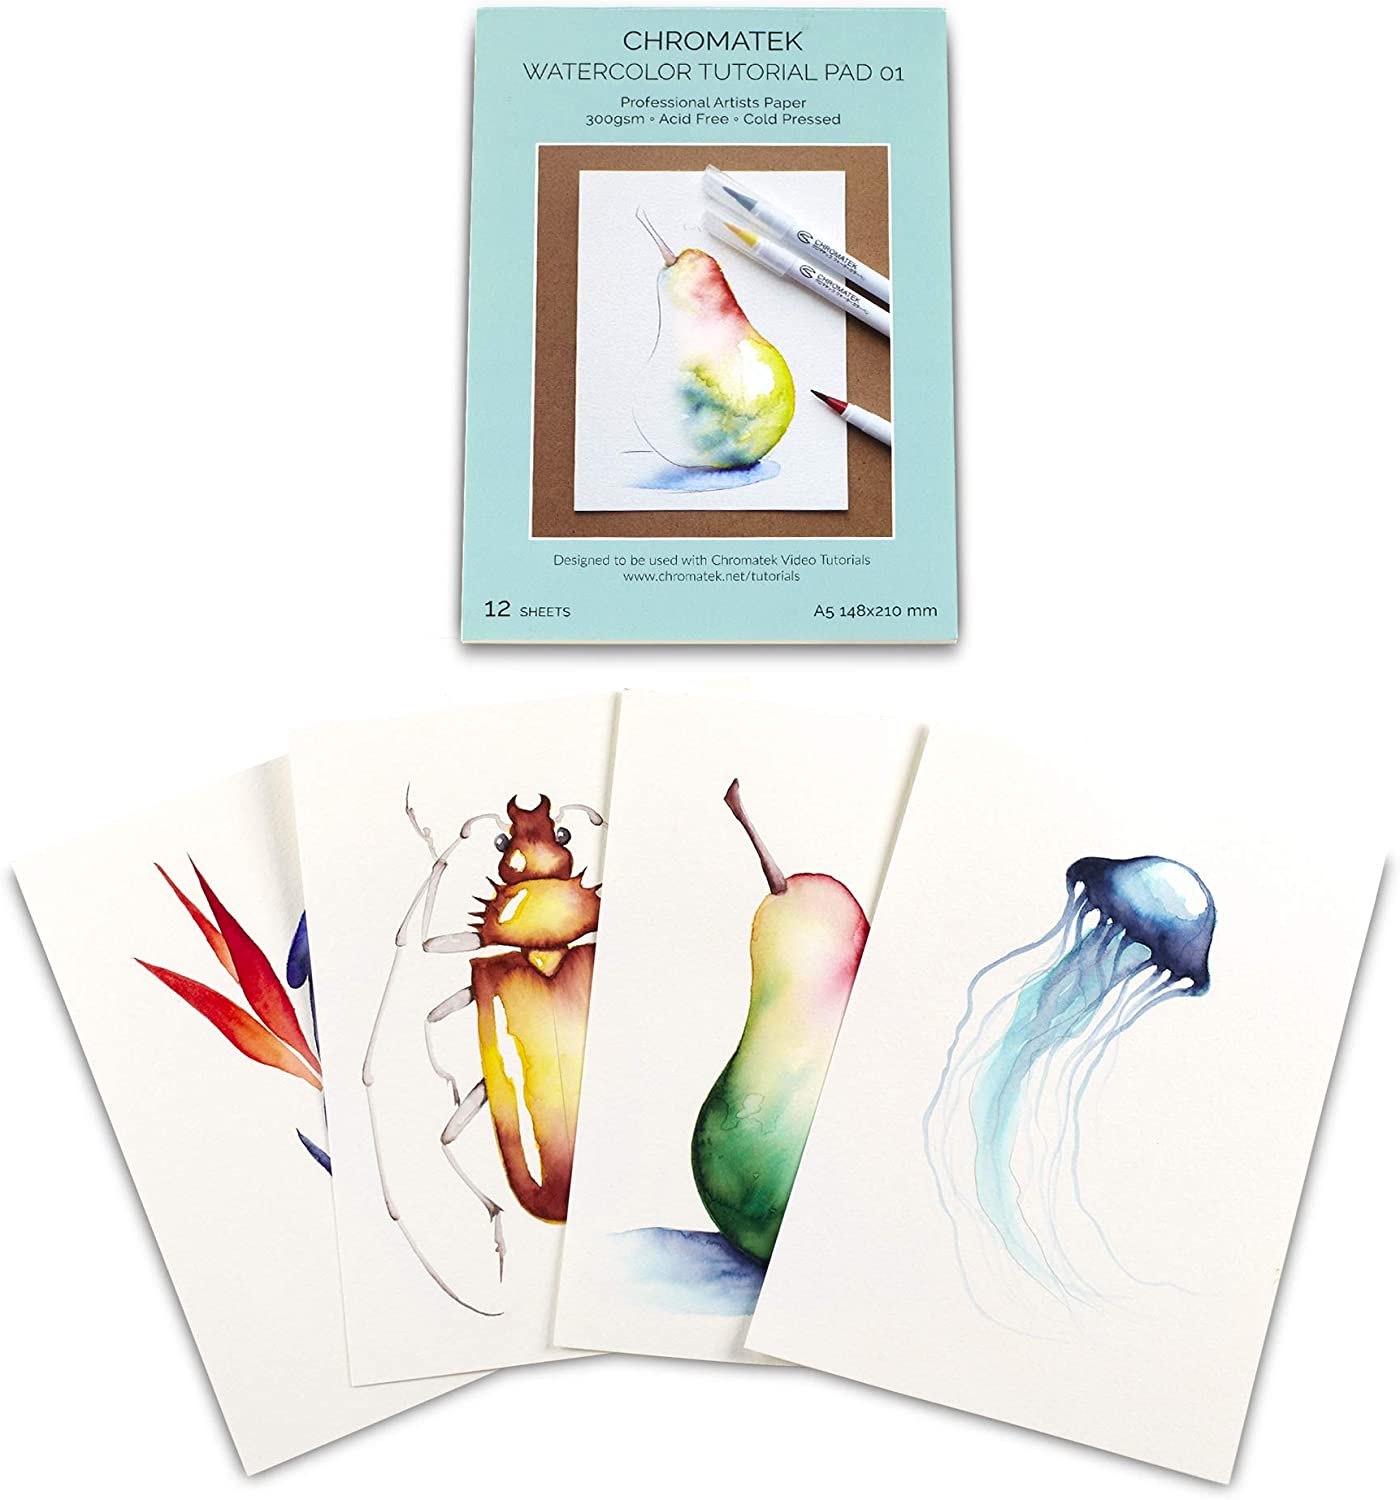 Watercolor Surprise price Paper and Video Tutorials Pressed Cold Tulsa Mall P 300gsm 12